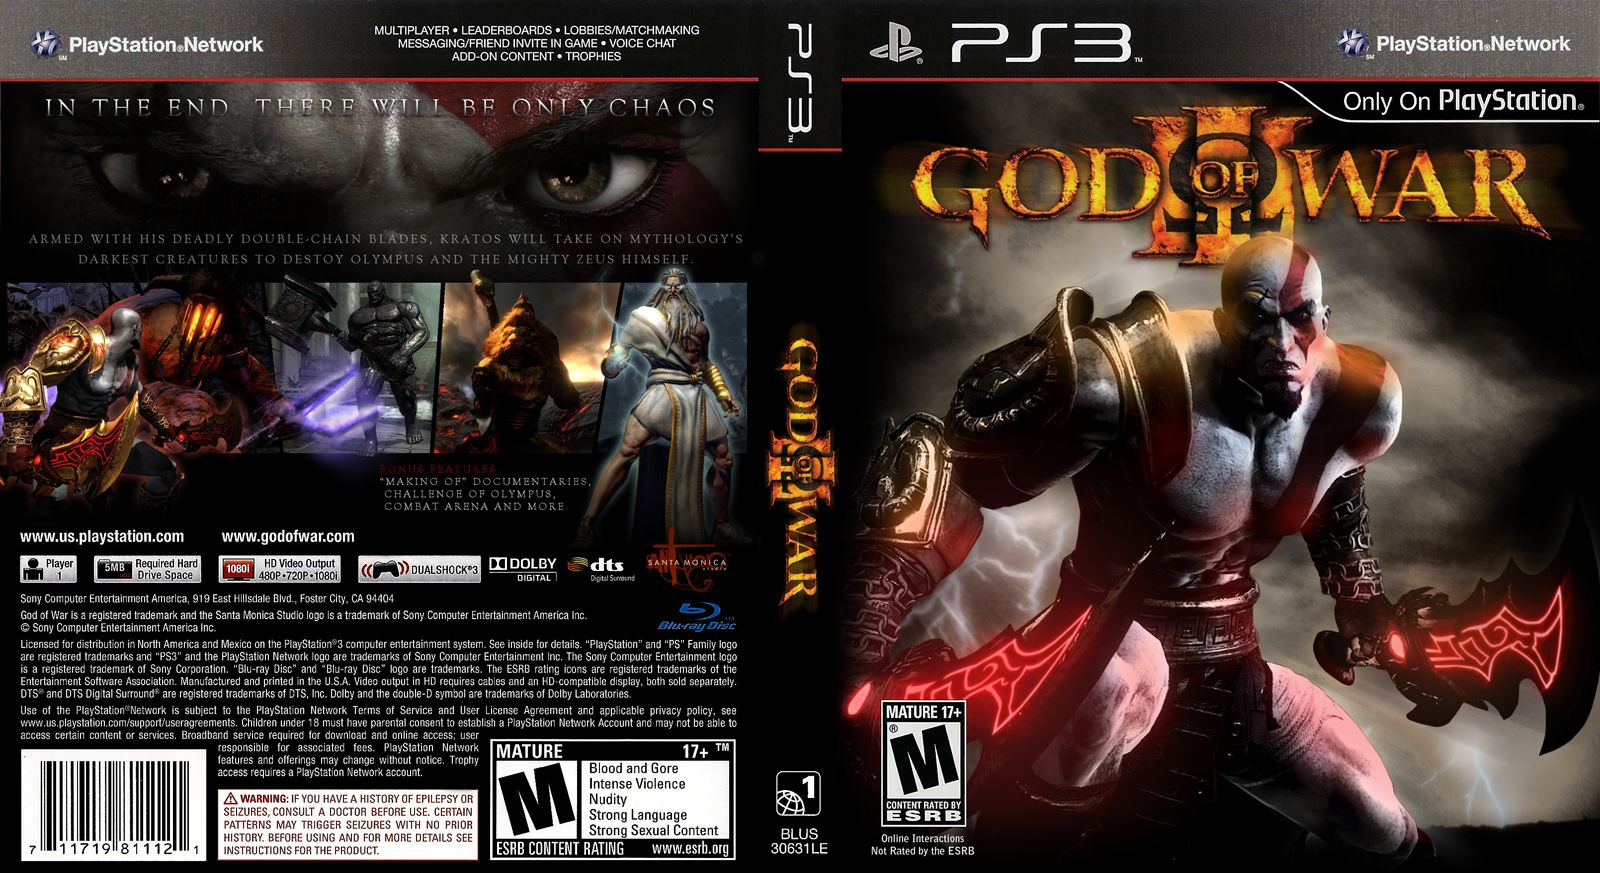 ps3 emulator games iso free download